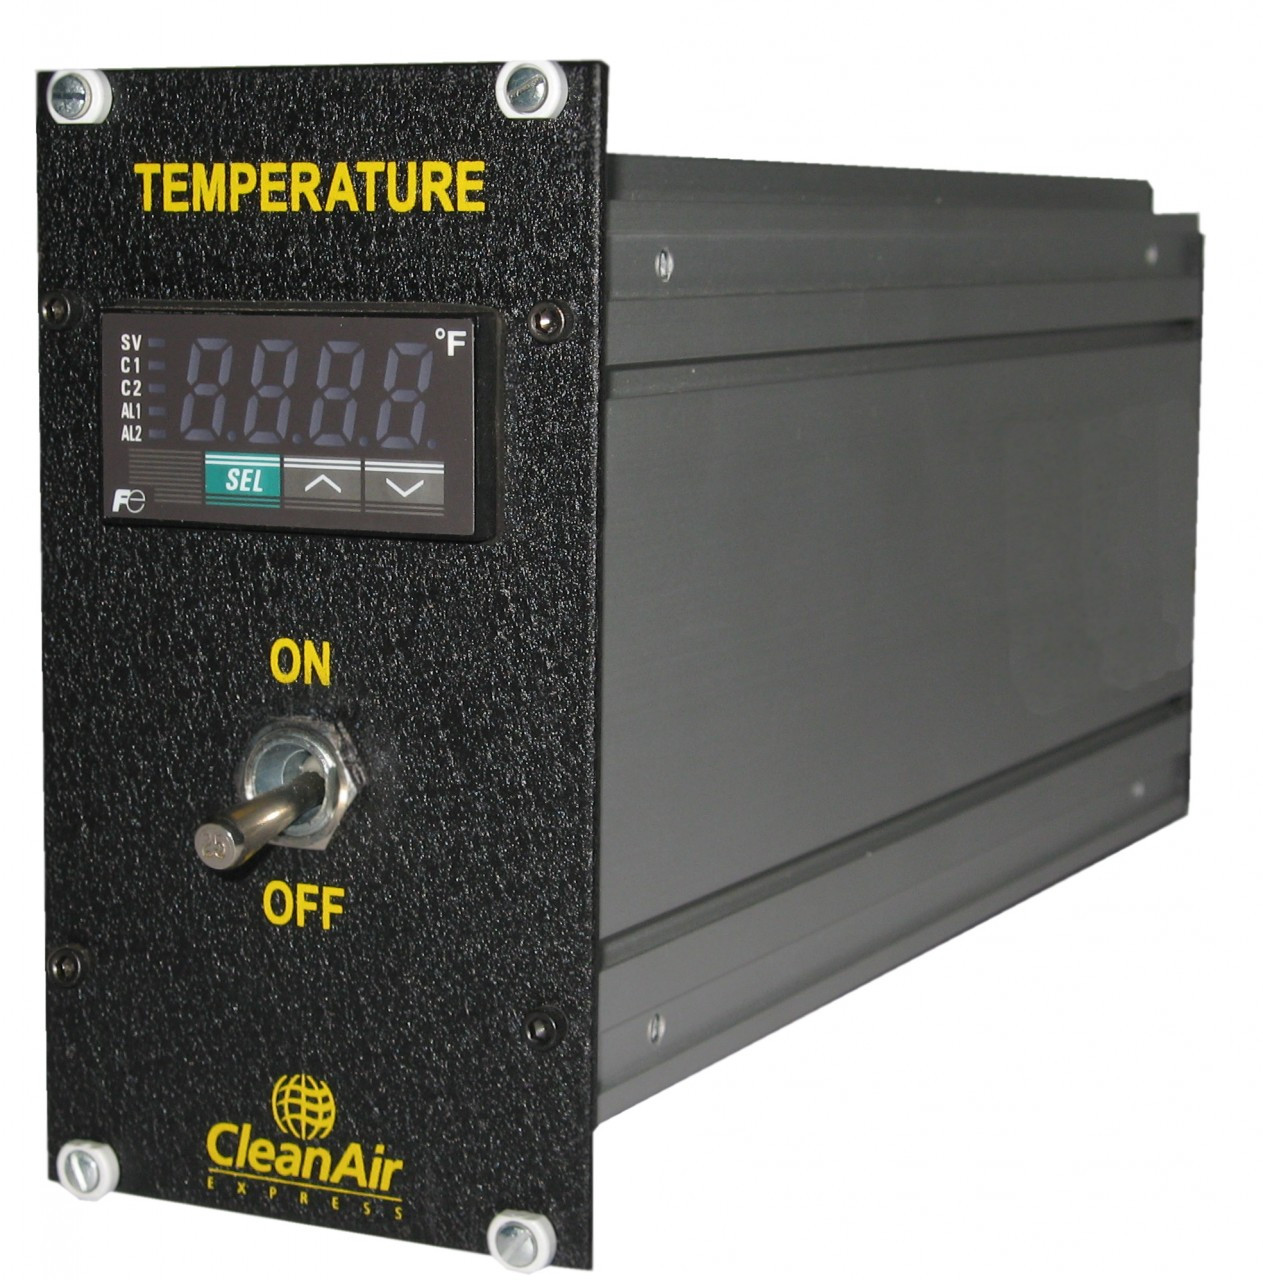 Rack Mount Temperature Controller #B7A114